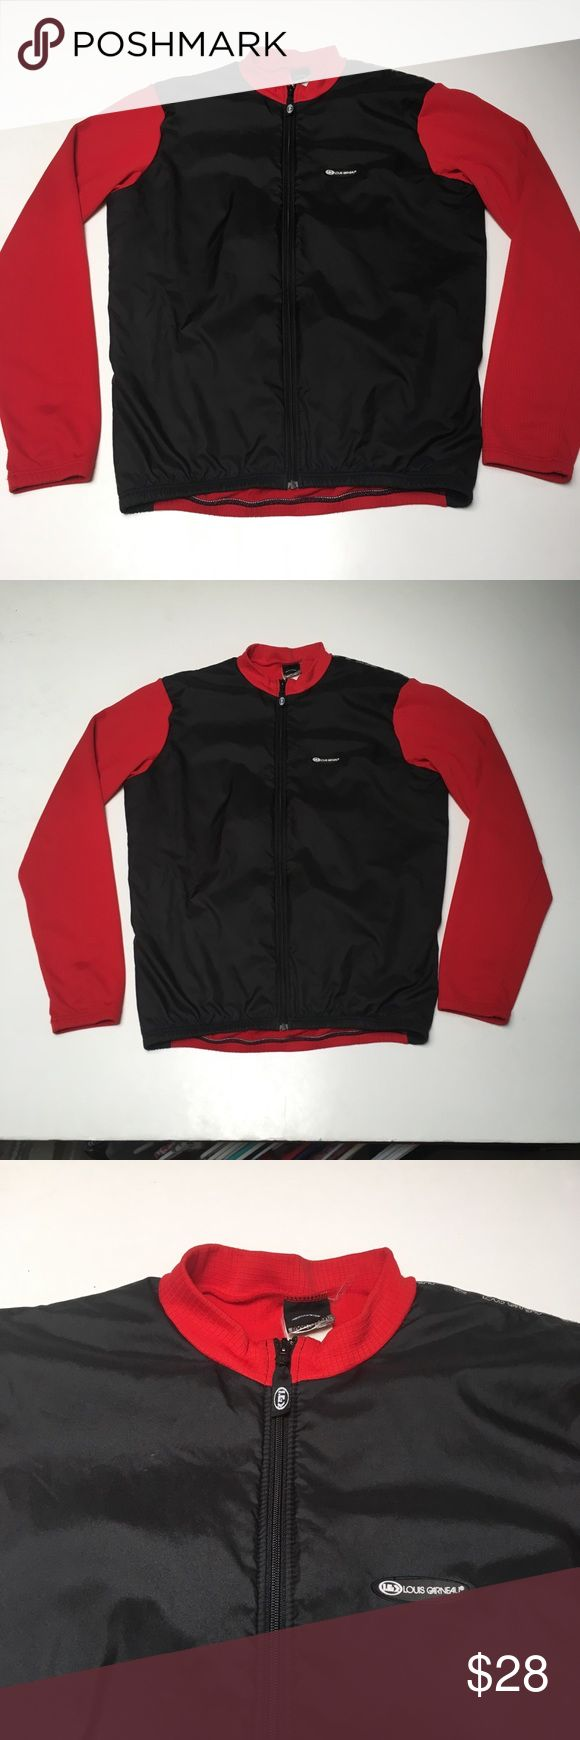 Vintage Louis Garneau Red Lined Bike Jersey Ride In excellent condition  Stay warm on your commute Zippers are all healthy  Please check measurements in pics for fit reference.     Smoke and pet free storage  Happy to answer any questions    Thanks for looking Louis Garneau Other